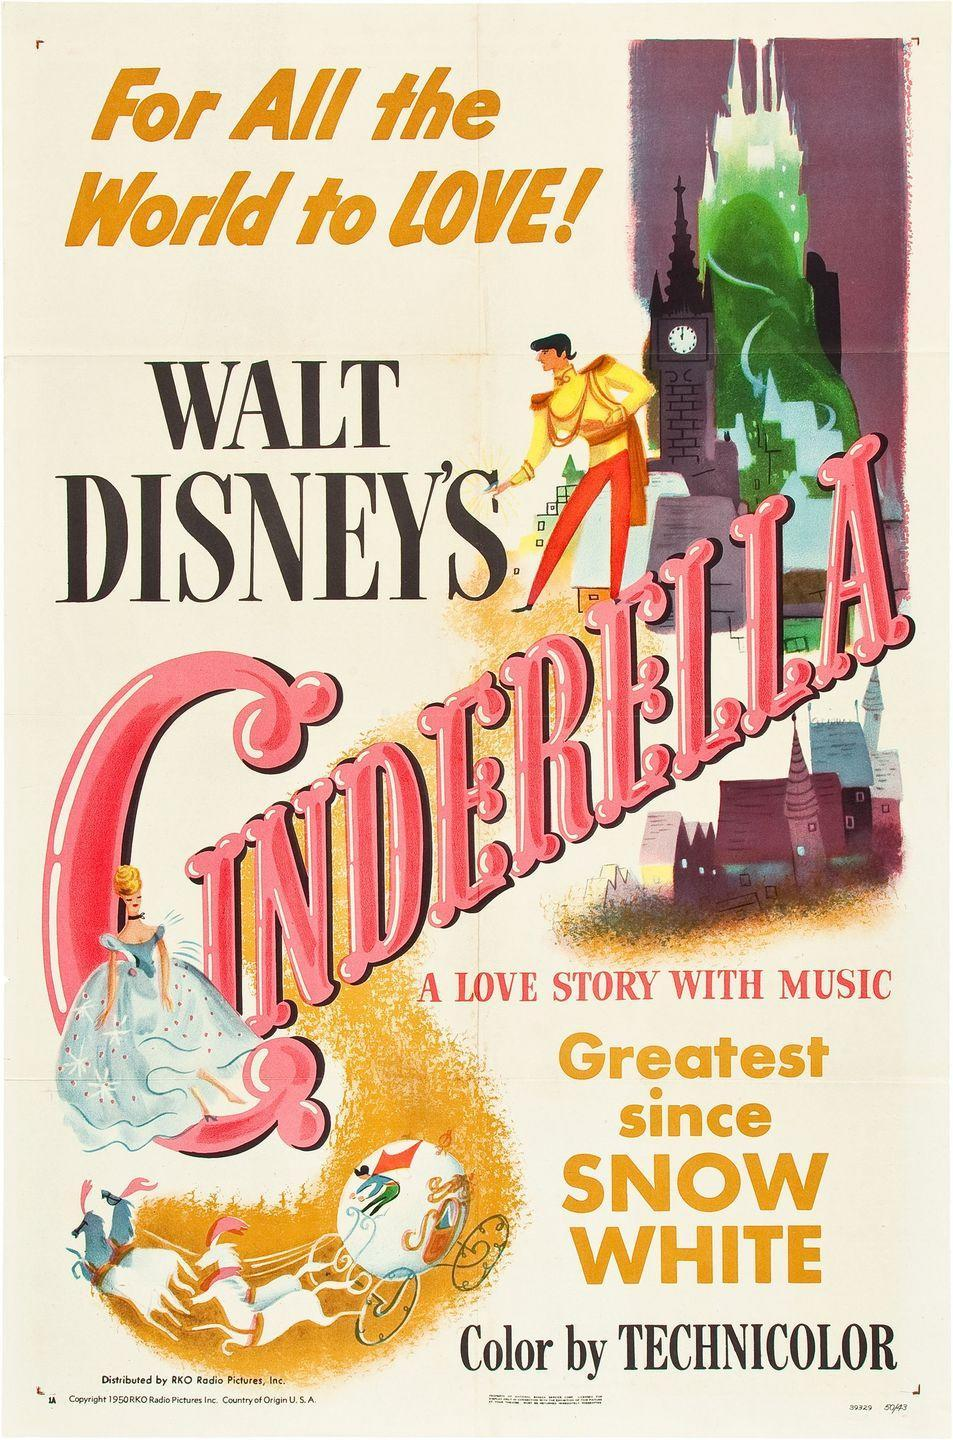 "<p>On February 15, Disney's <a href=""http://www.history.com/this-day-in-history/disneys-cinderella-opens"" rel=""nofollow noopener"" target=""_blank"" data-ylk=""slk:Cinderella premieres"" class=""link rapid-noclick-resp""><em>Cinderella</em> premieres</a> and quickly becomes one of the highest-grossing movies of that year.</p><p><span class=""redactor-invisible-space""><em>RELATED: <a href=""https://www.goodhousekeeping.com/life/entertainment/g34561165/royals-dress-like-disney-princesses/"" rel=""nofollow noopener"" target=""_blank"" data-ylk=""slk:40+ Times Royals Dressed Exactly Like Disney Princesses"" class=""link rapid-noclick-resp"">40+ Times Royals Dressed Exactly Like Disney Princesses</a></em></span></p>"